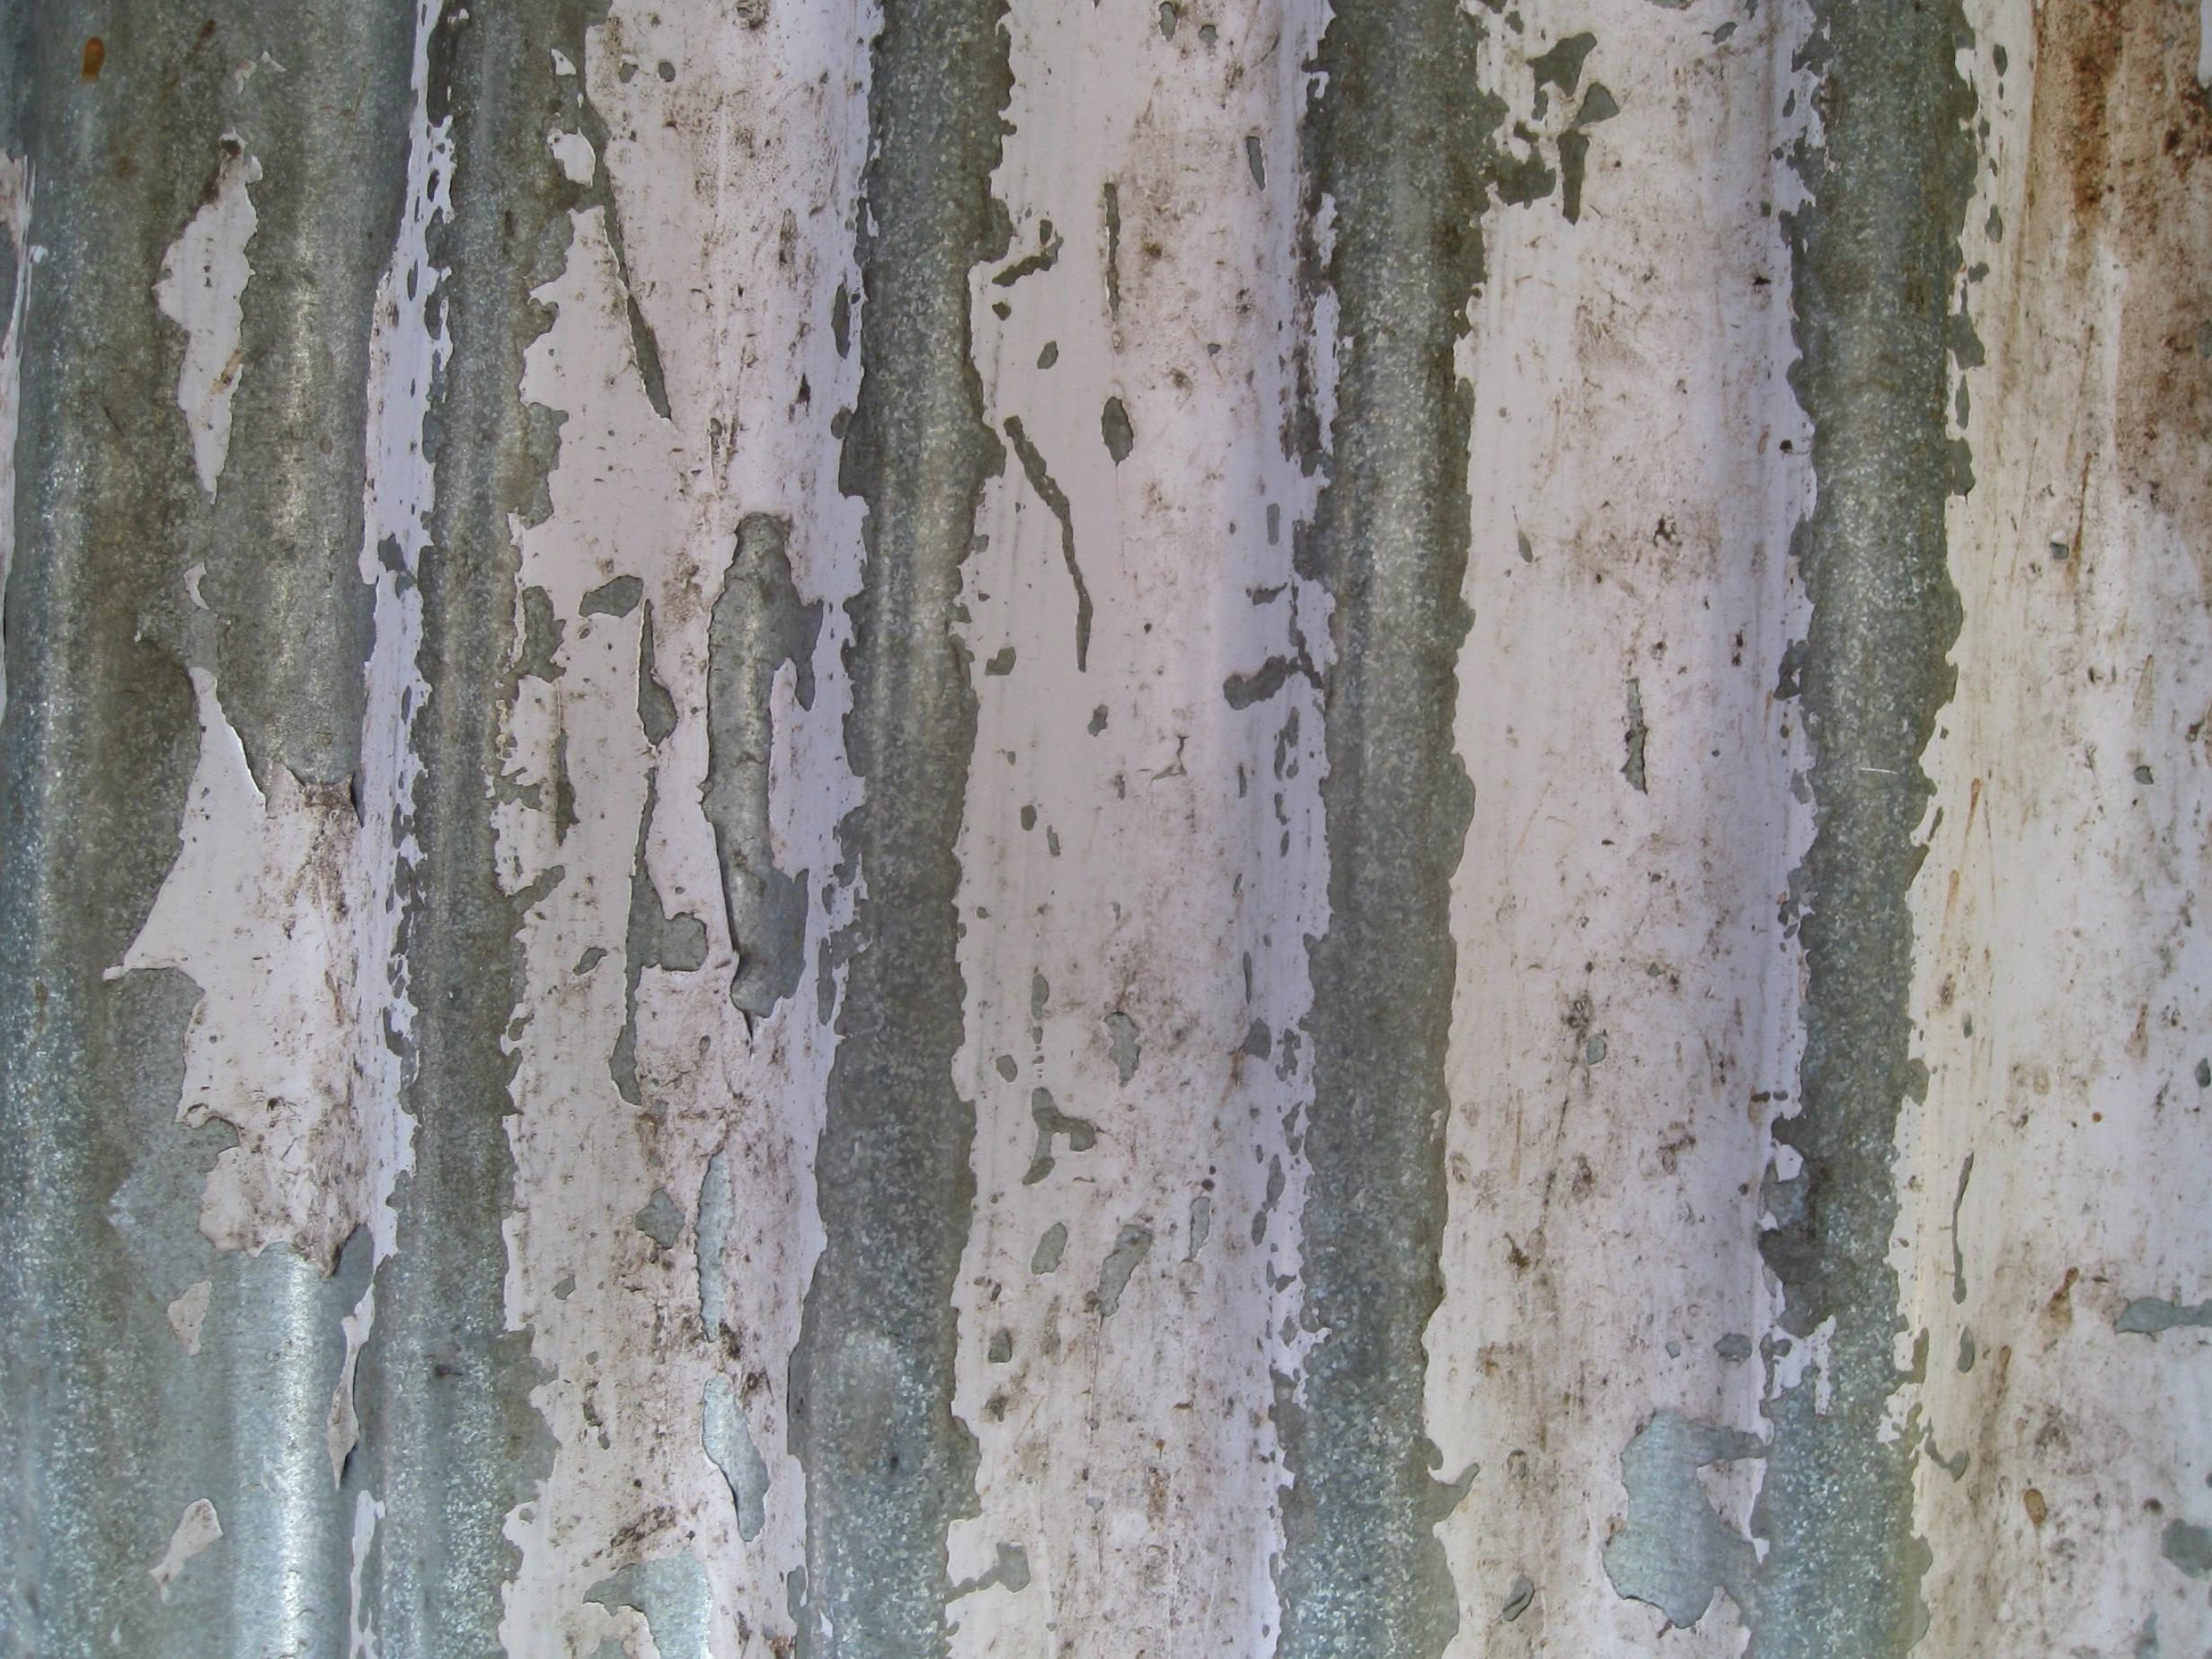 metal wall texture. Metal, Iron, Old, Texture, Wall, Surface, Material, Pattern Metal Wall Texture